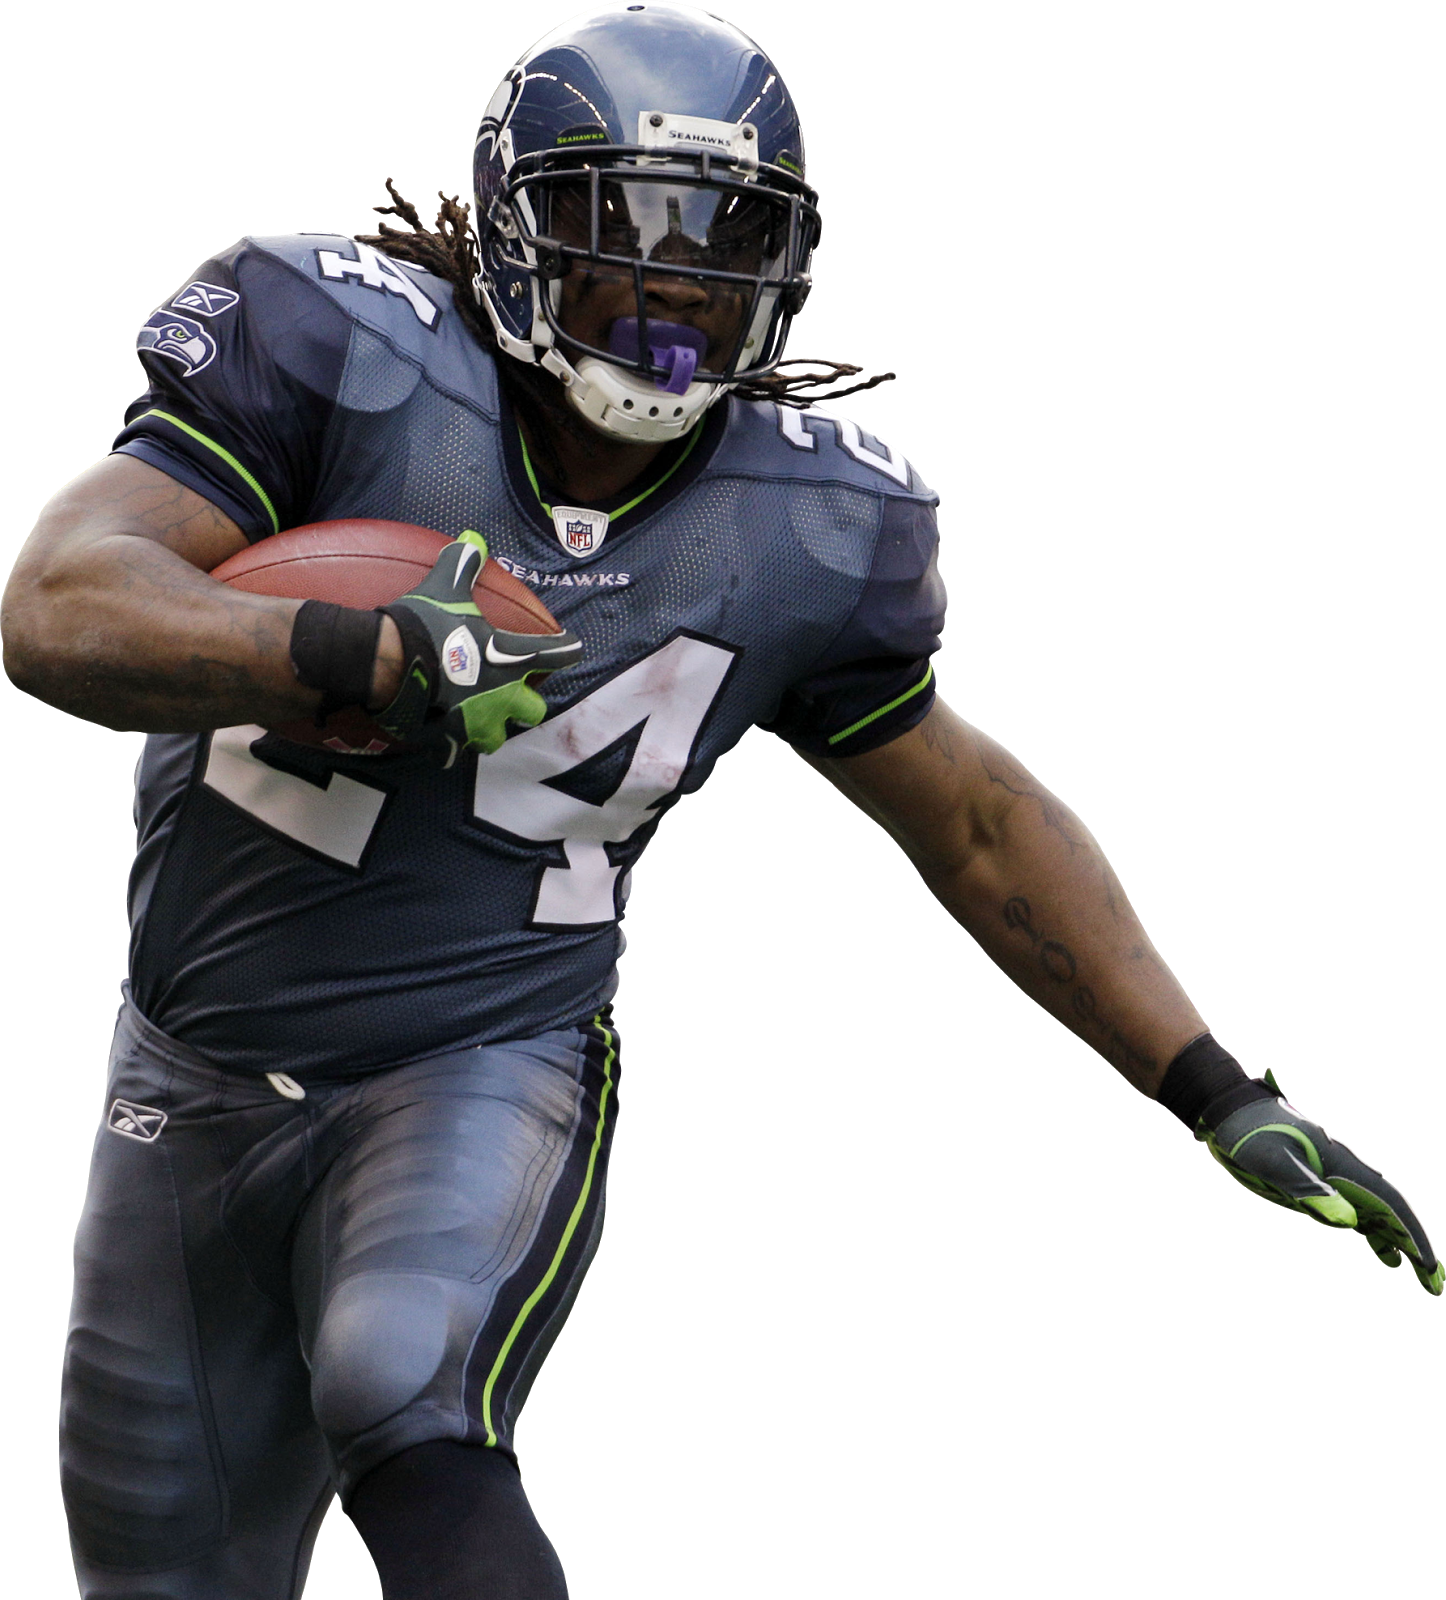 Marshawn lynch clipart.